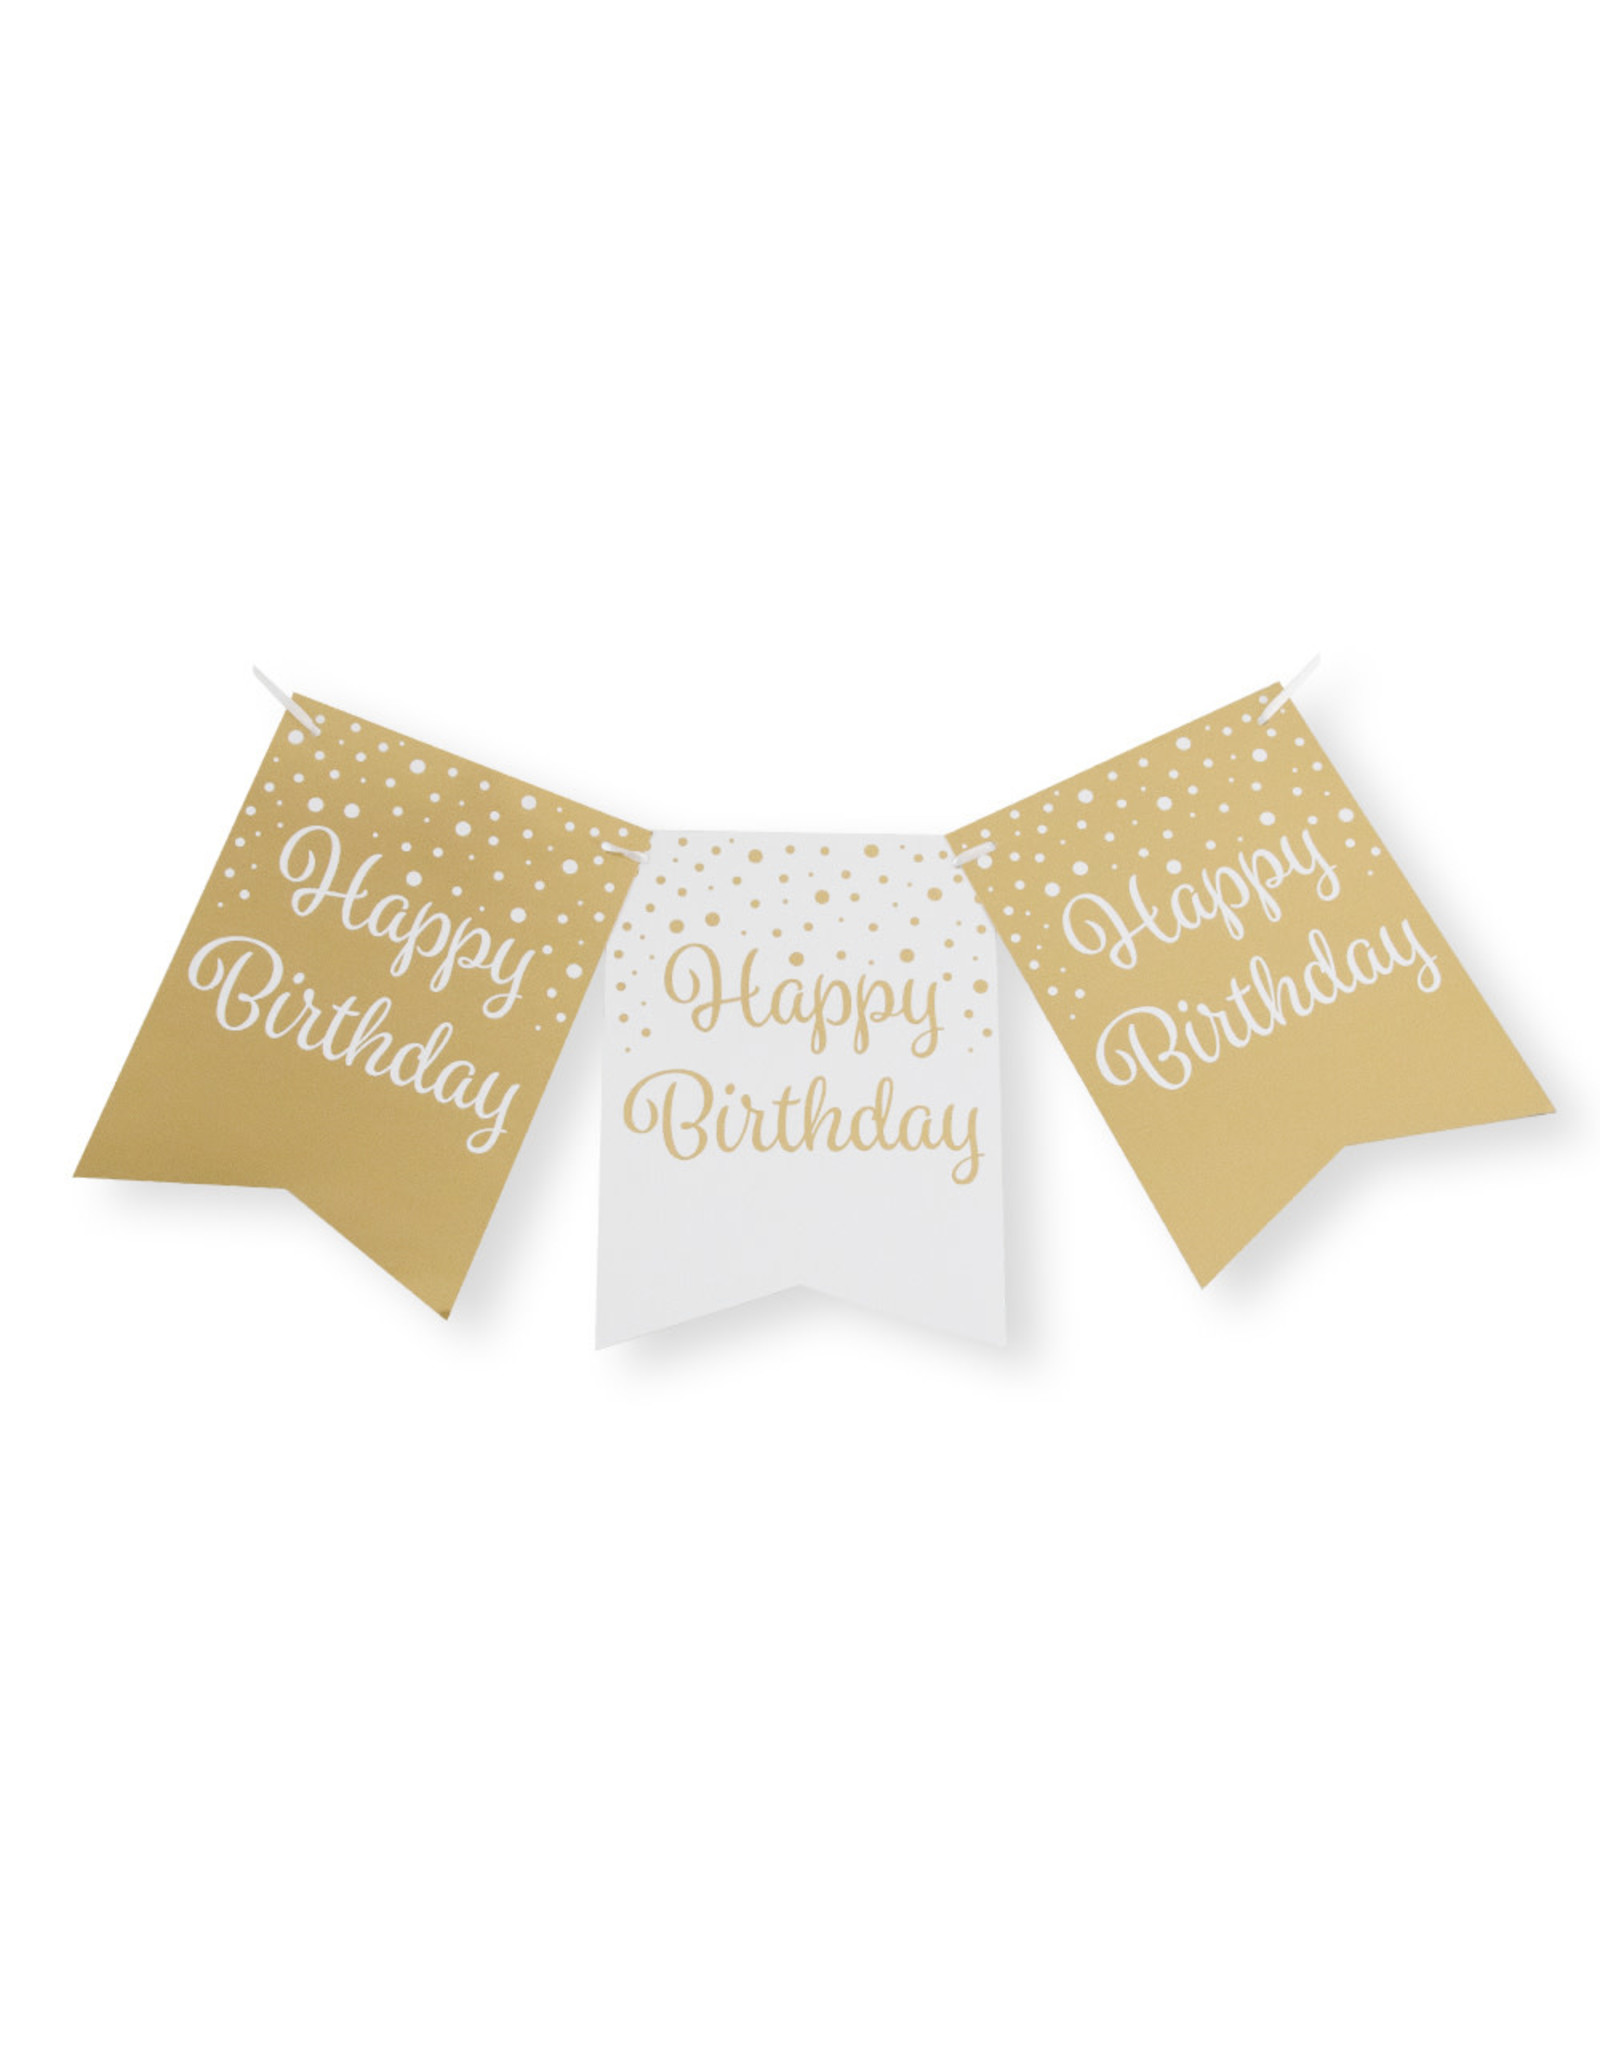 Party flag banner gold & white happy birthday 6 meter